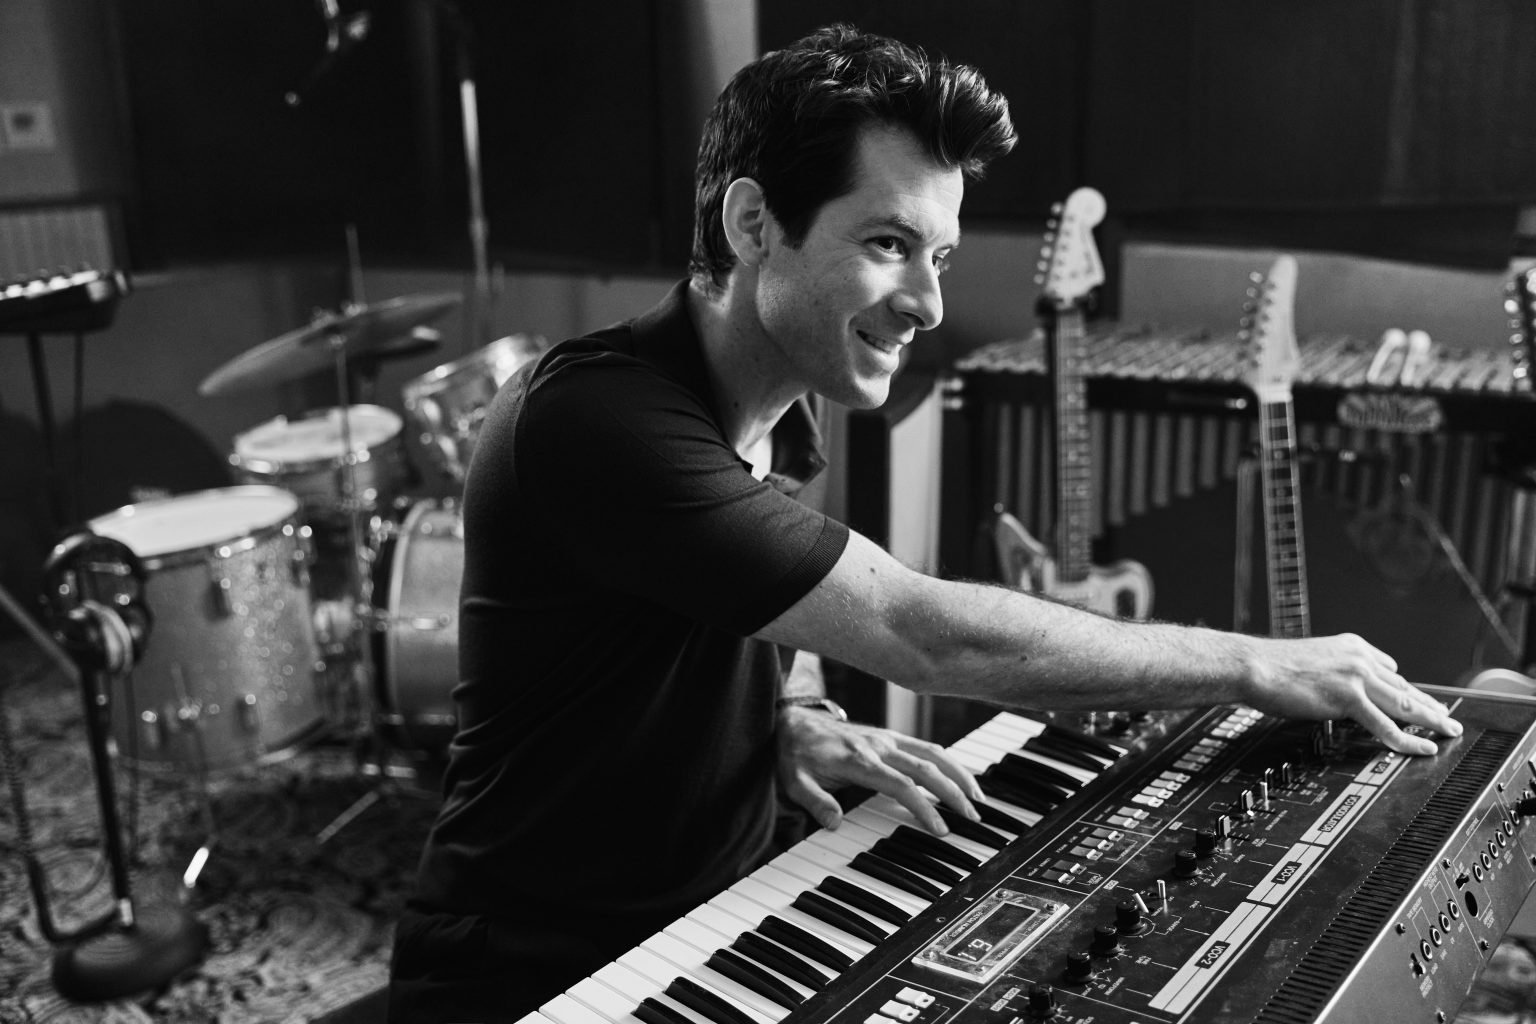 Watch The Sound with Mark Ronson review: The producer breaks down the elements of music on the hugely enjoyable new Apple TV+ docuseries.